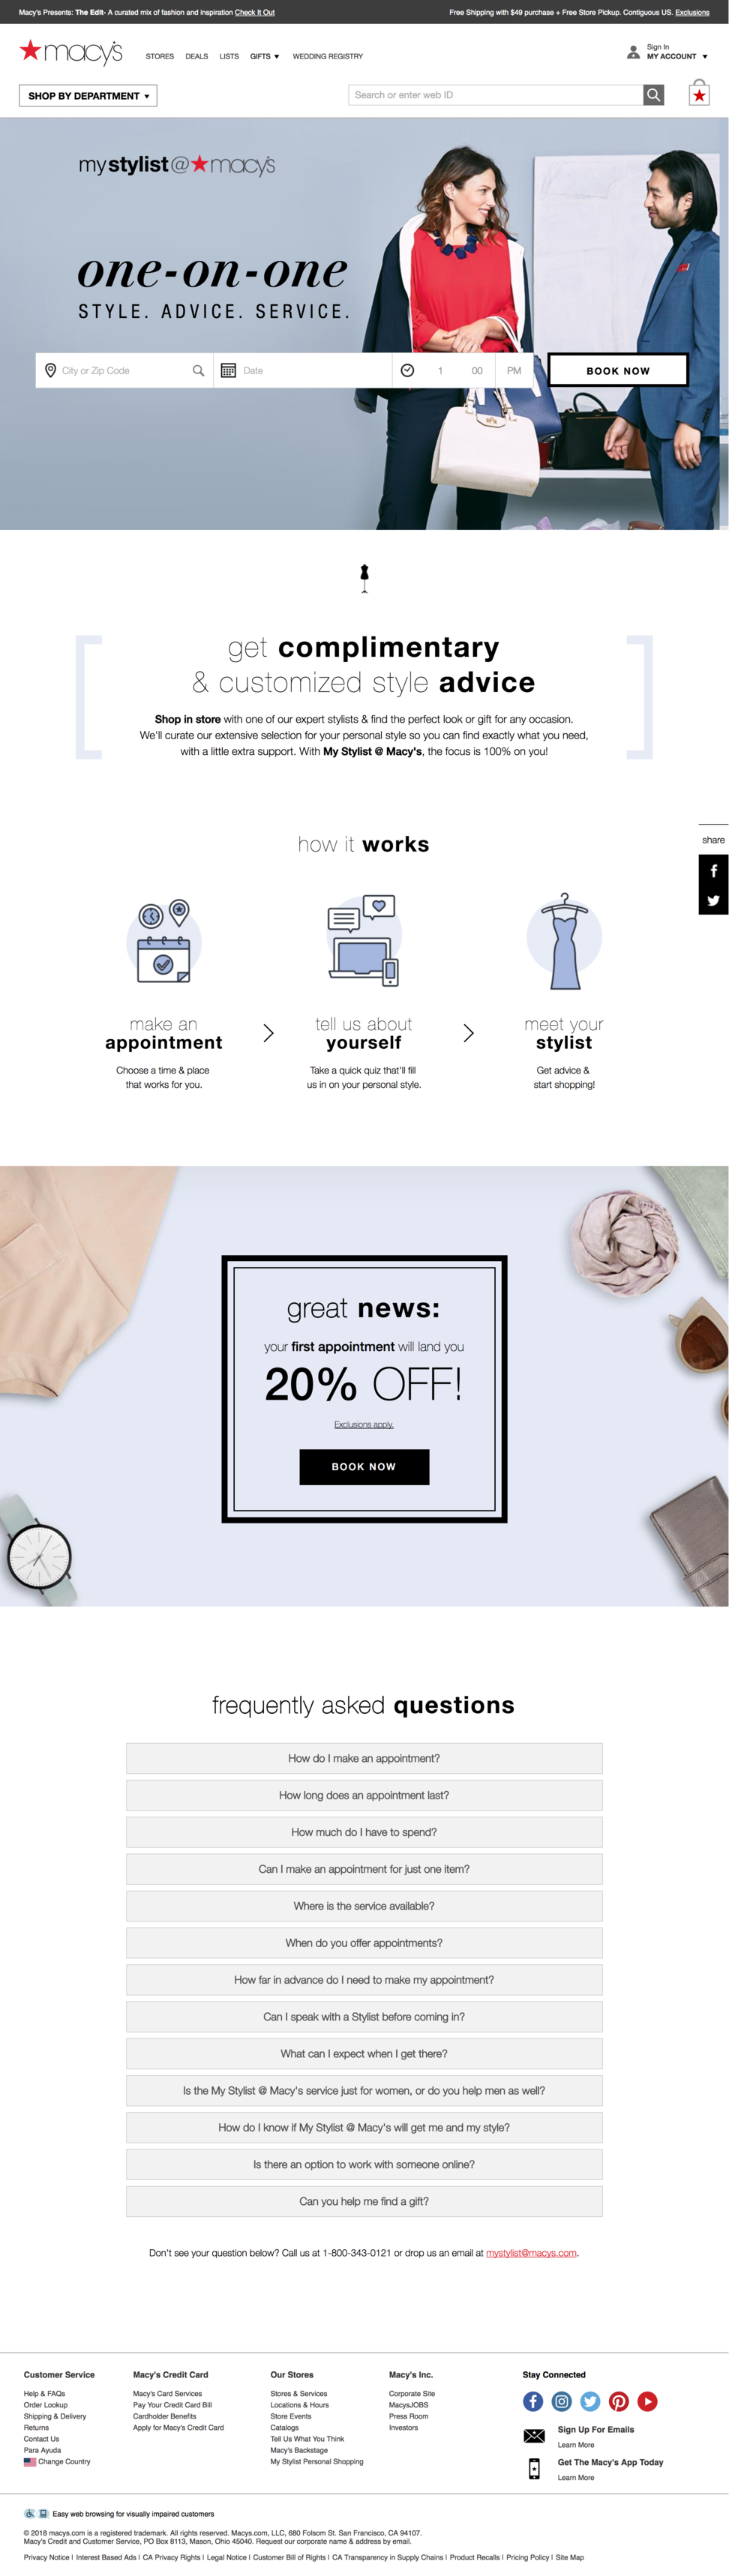 My Stylist Landing Page.png